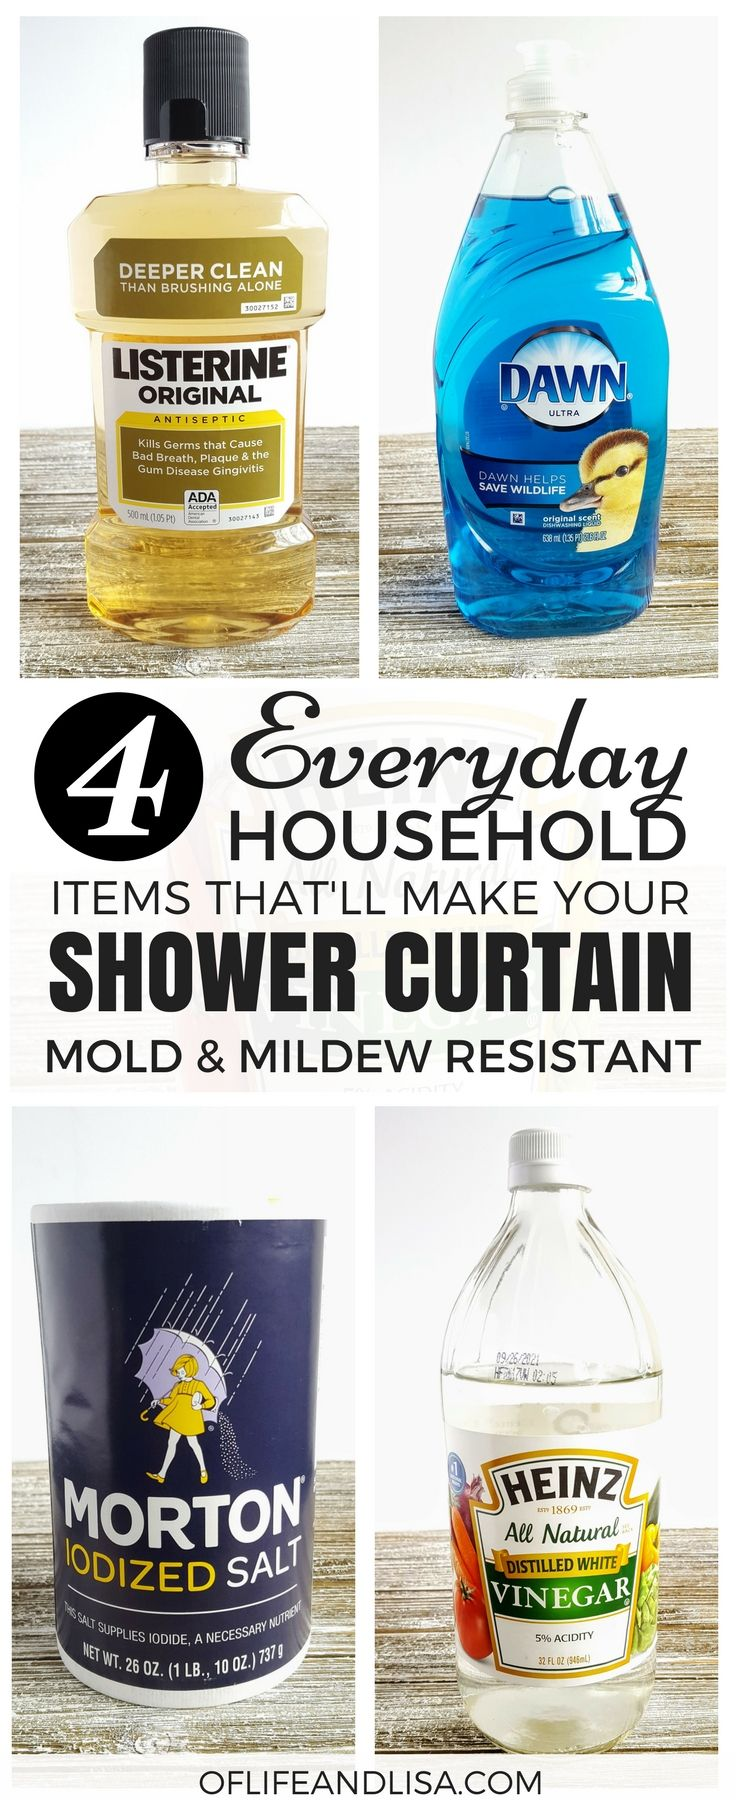 This Post Will Show You How To Use Everyday Products Keep Your Shower Curtains And Liners Mold Mildew Free True Lifesaver